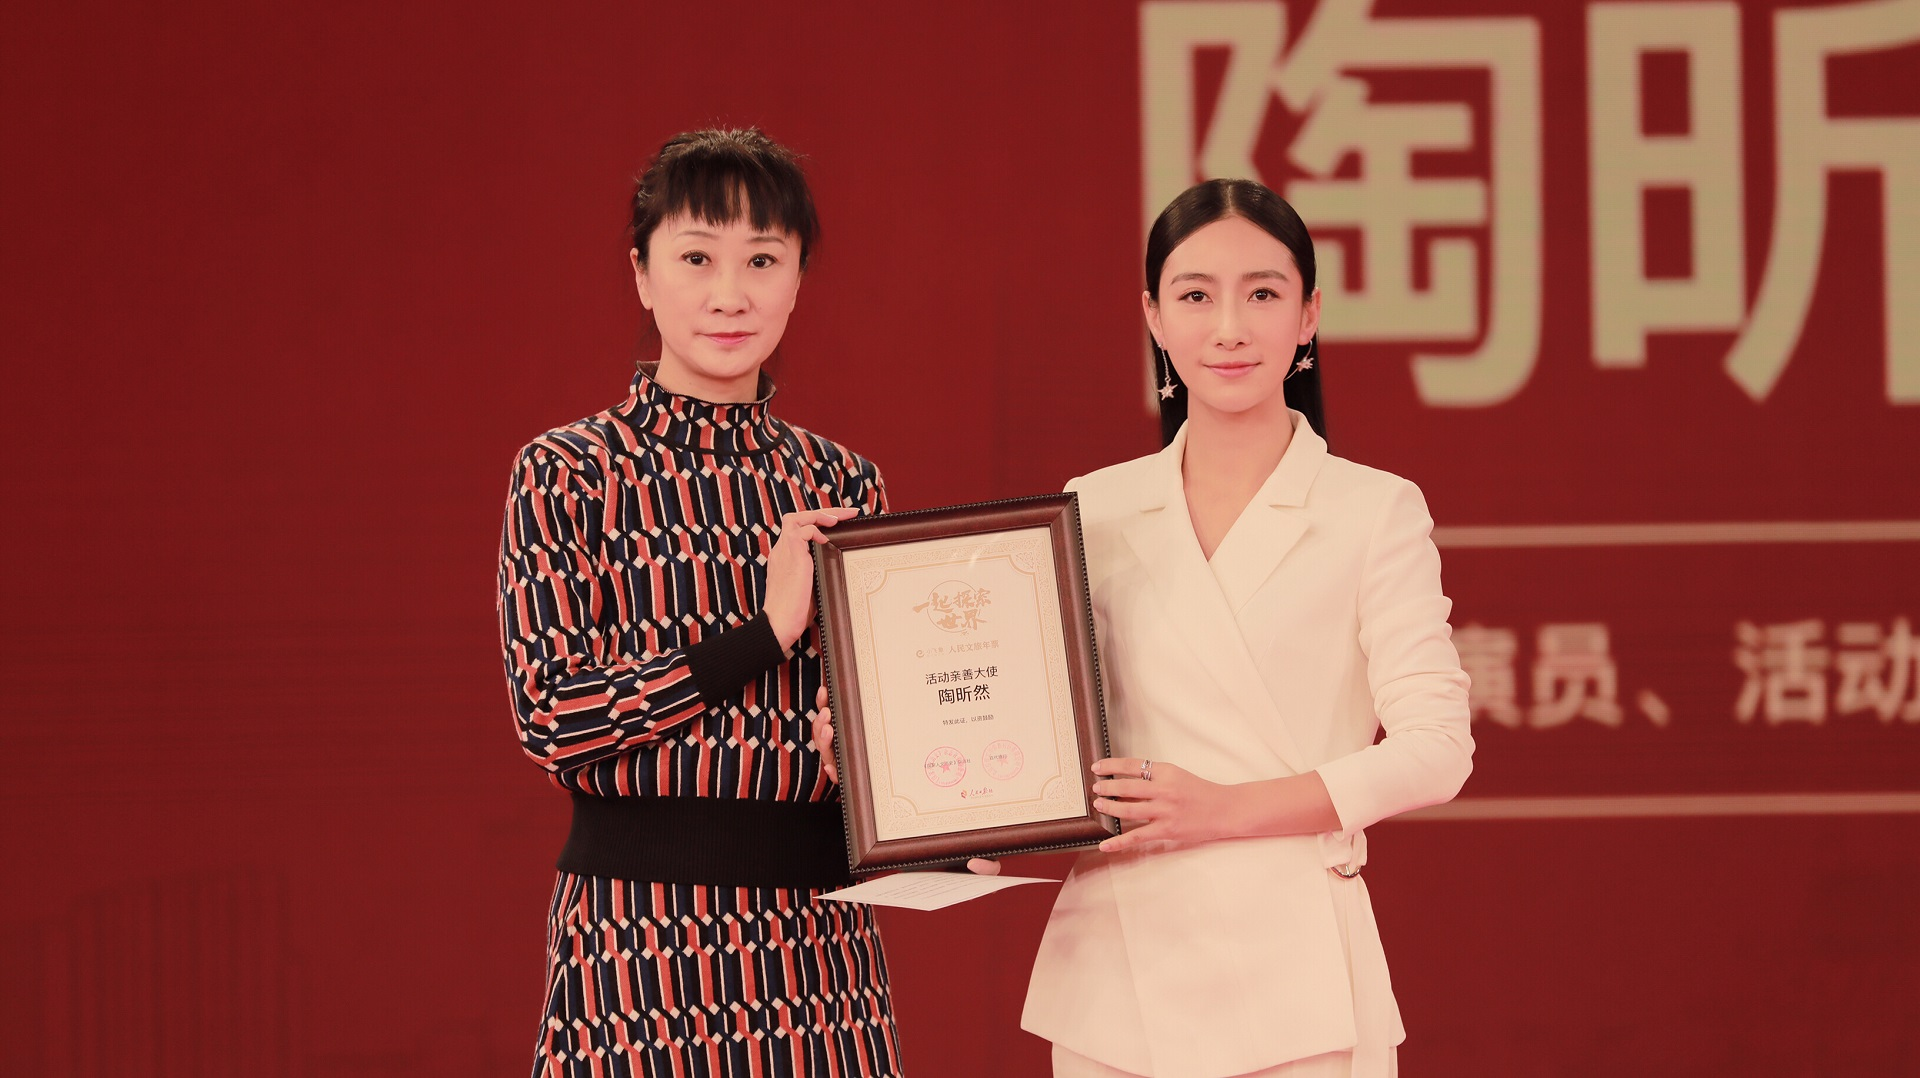 Practice social responsibility! tao xinran was awarded the people's cultural tourism goodwill ambassador calling for special people's care